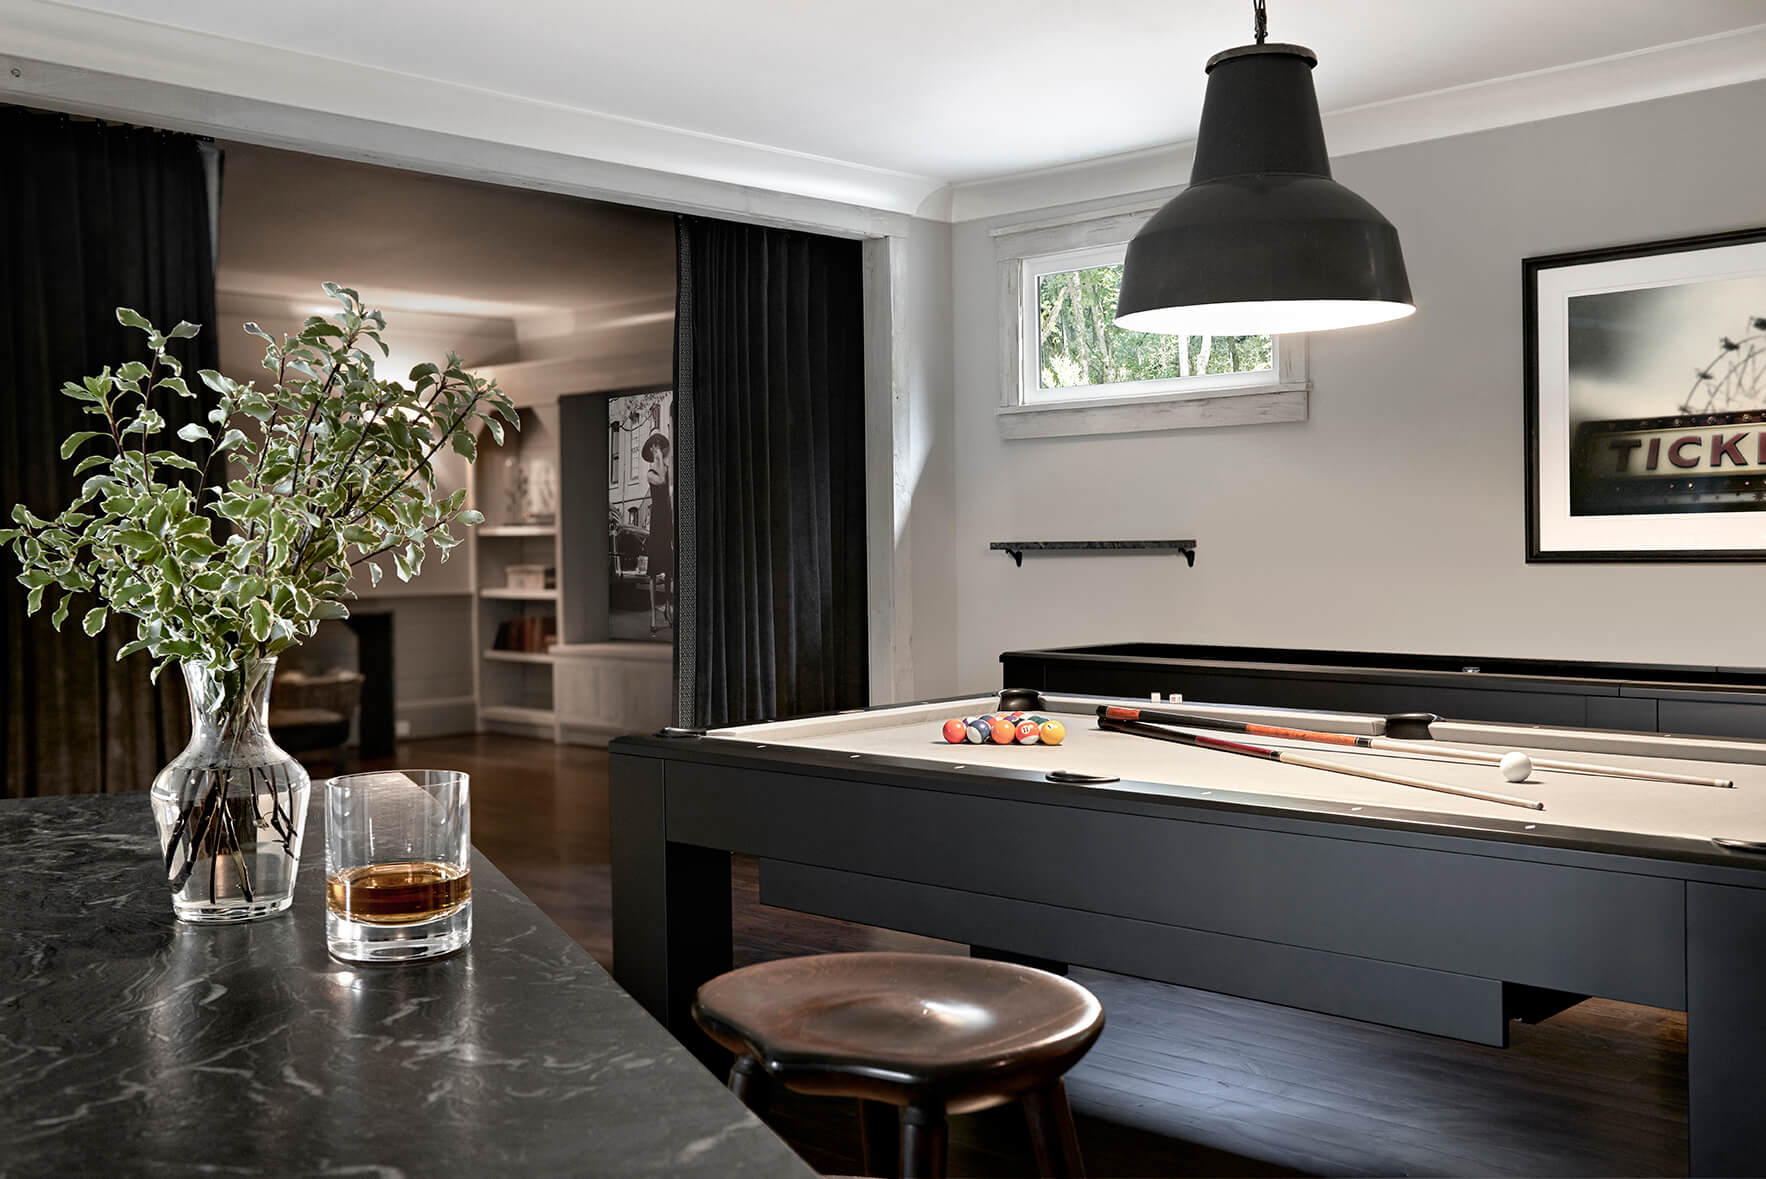 Recreation room with pool table and bar - Rustic Contemporary Bureau Interior Design Nashville TN